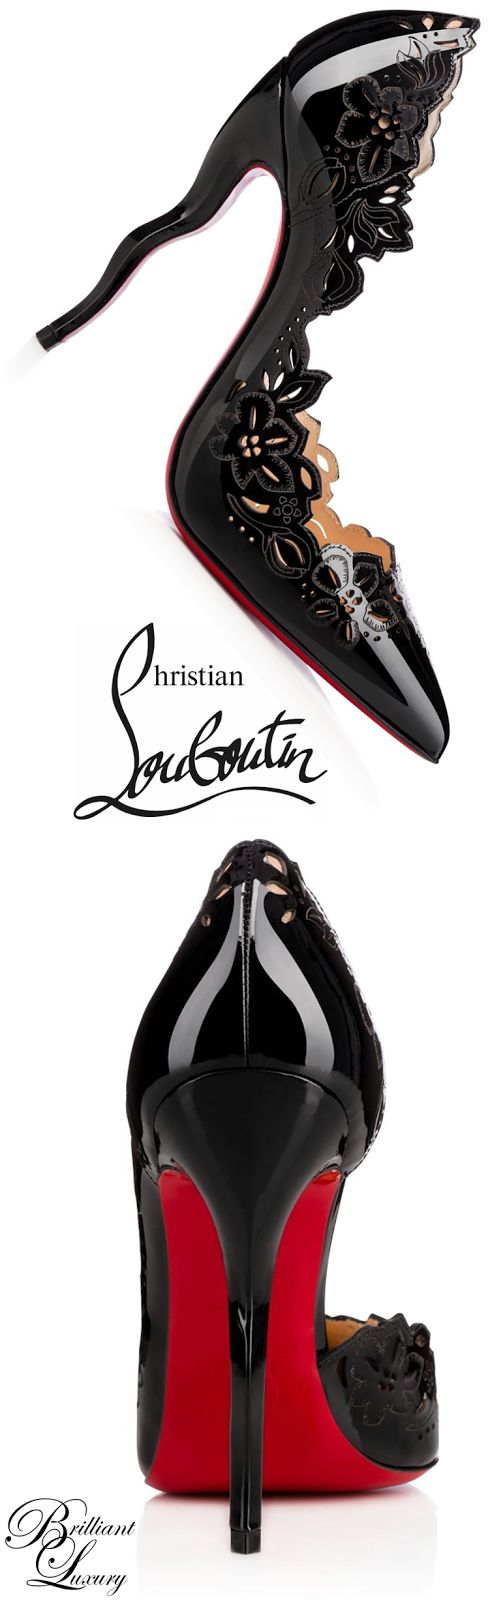 ♦Christian Louboutin 'Black Edition' 2015 with <3 from JDzigner www.jdzigner.com